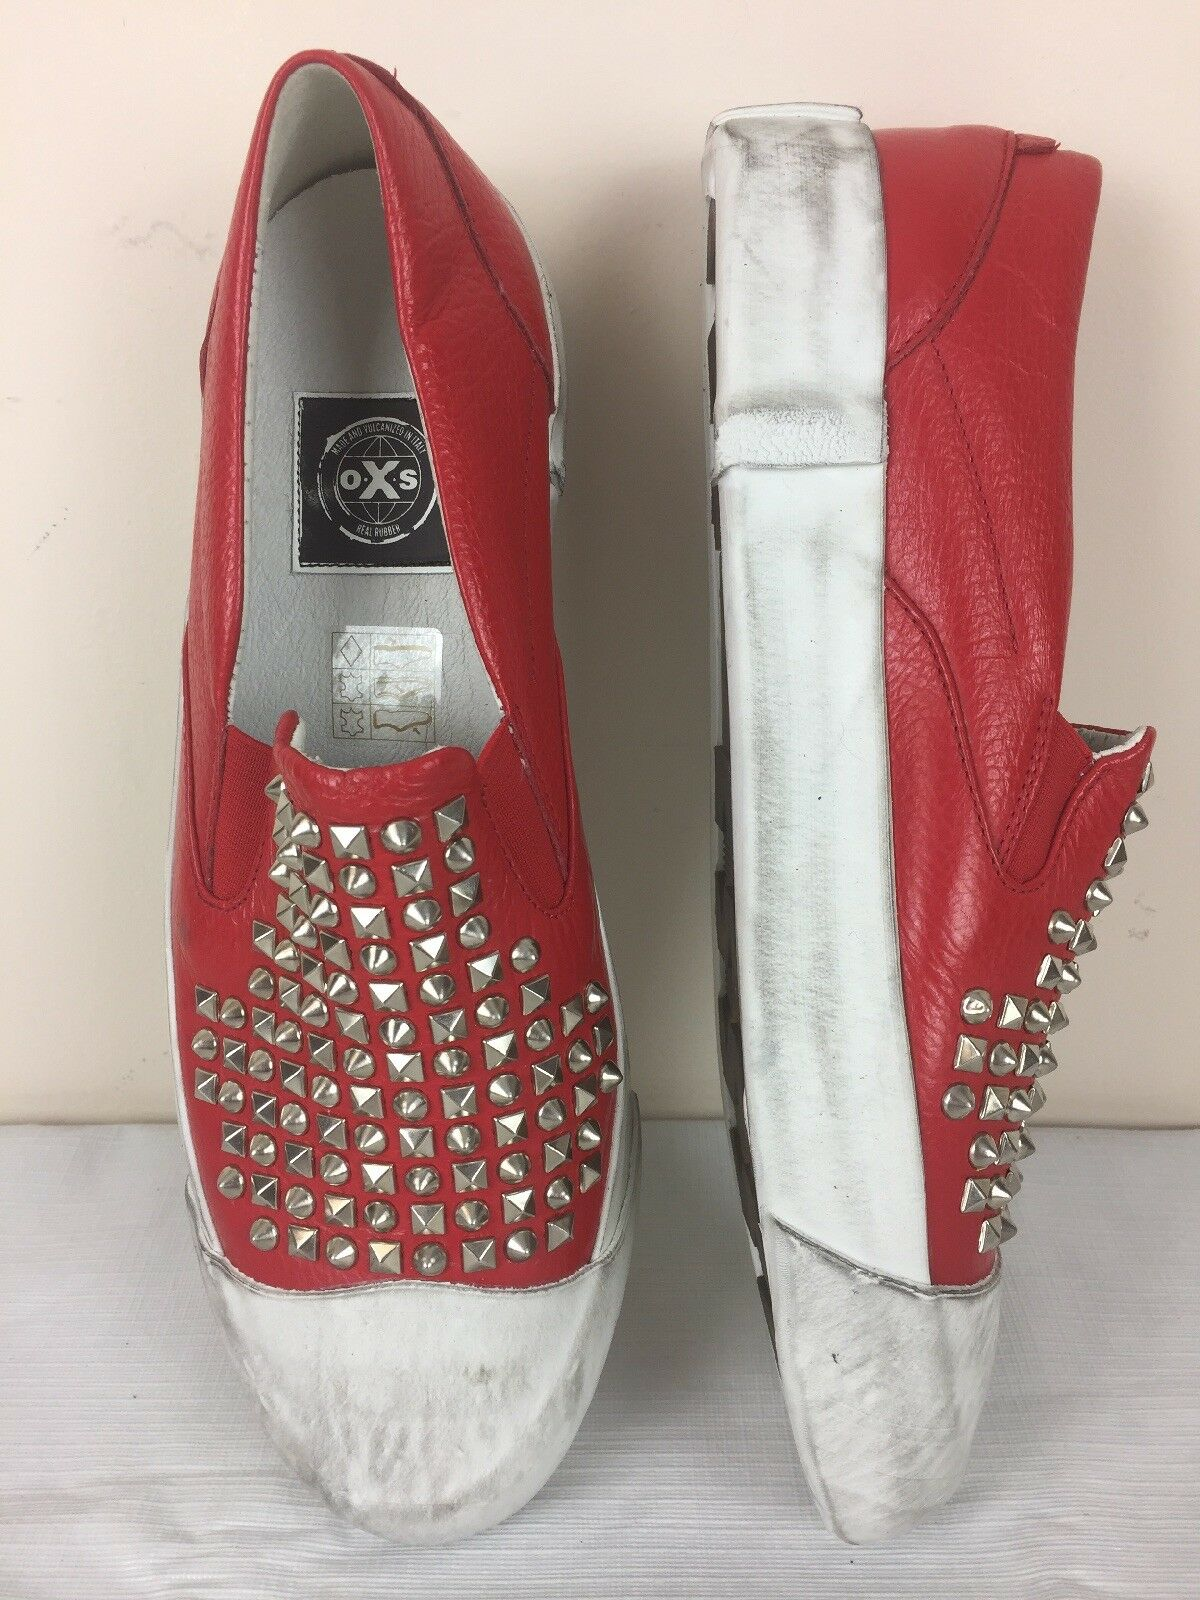 OXs Soft Leather Red Vulcanized Slip On Designer Sneakers Sz 38 US 8 Studded